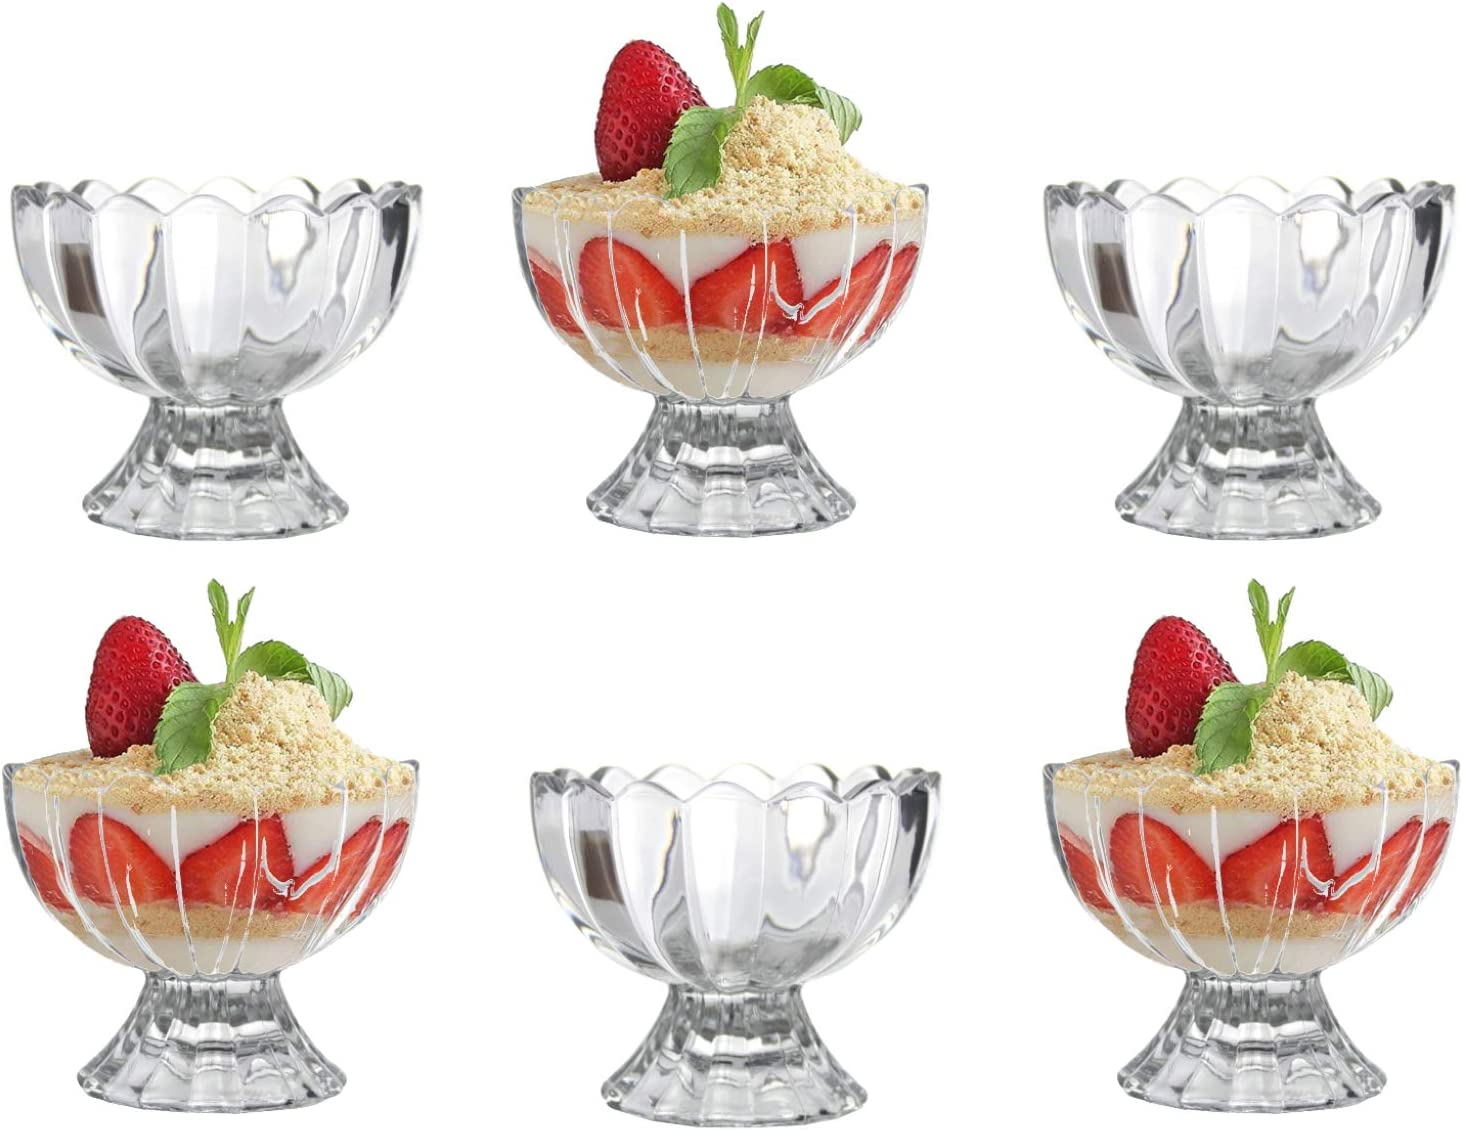 Qing Ping Guo GlassIce Cream Bowls Sundae Dessert Glasses Mini Glass Trifle Bowls Set Of 6 Short Stemmed Ice Cream Serving Dishes Footed Fruit Salad Pudding Dessert Cups